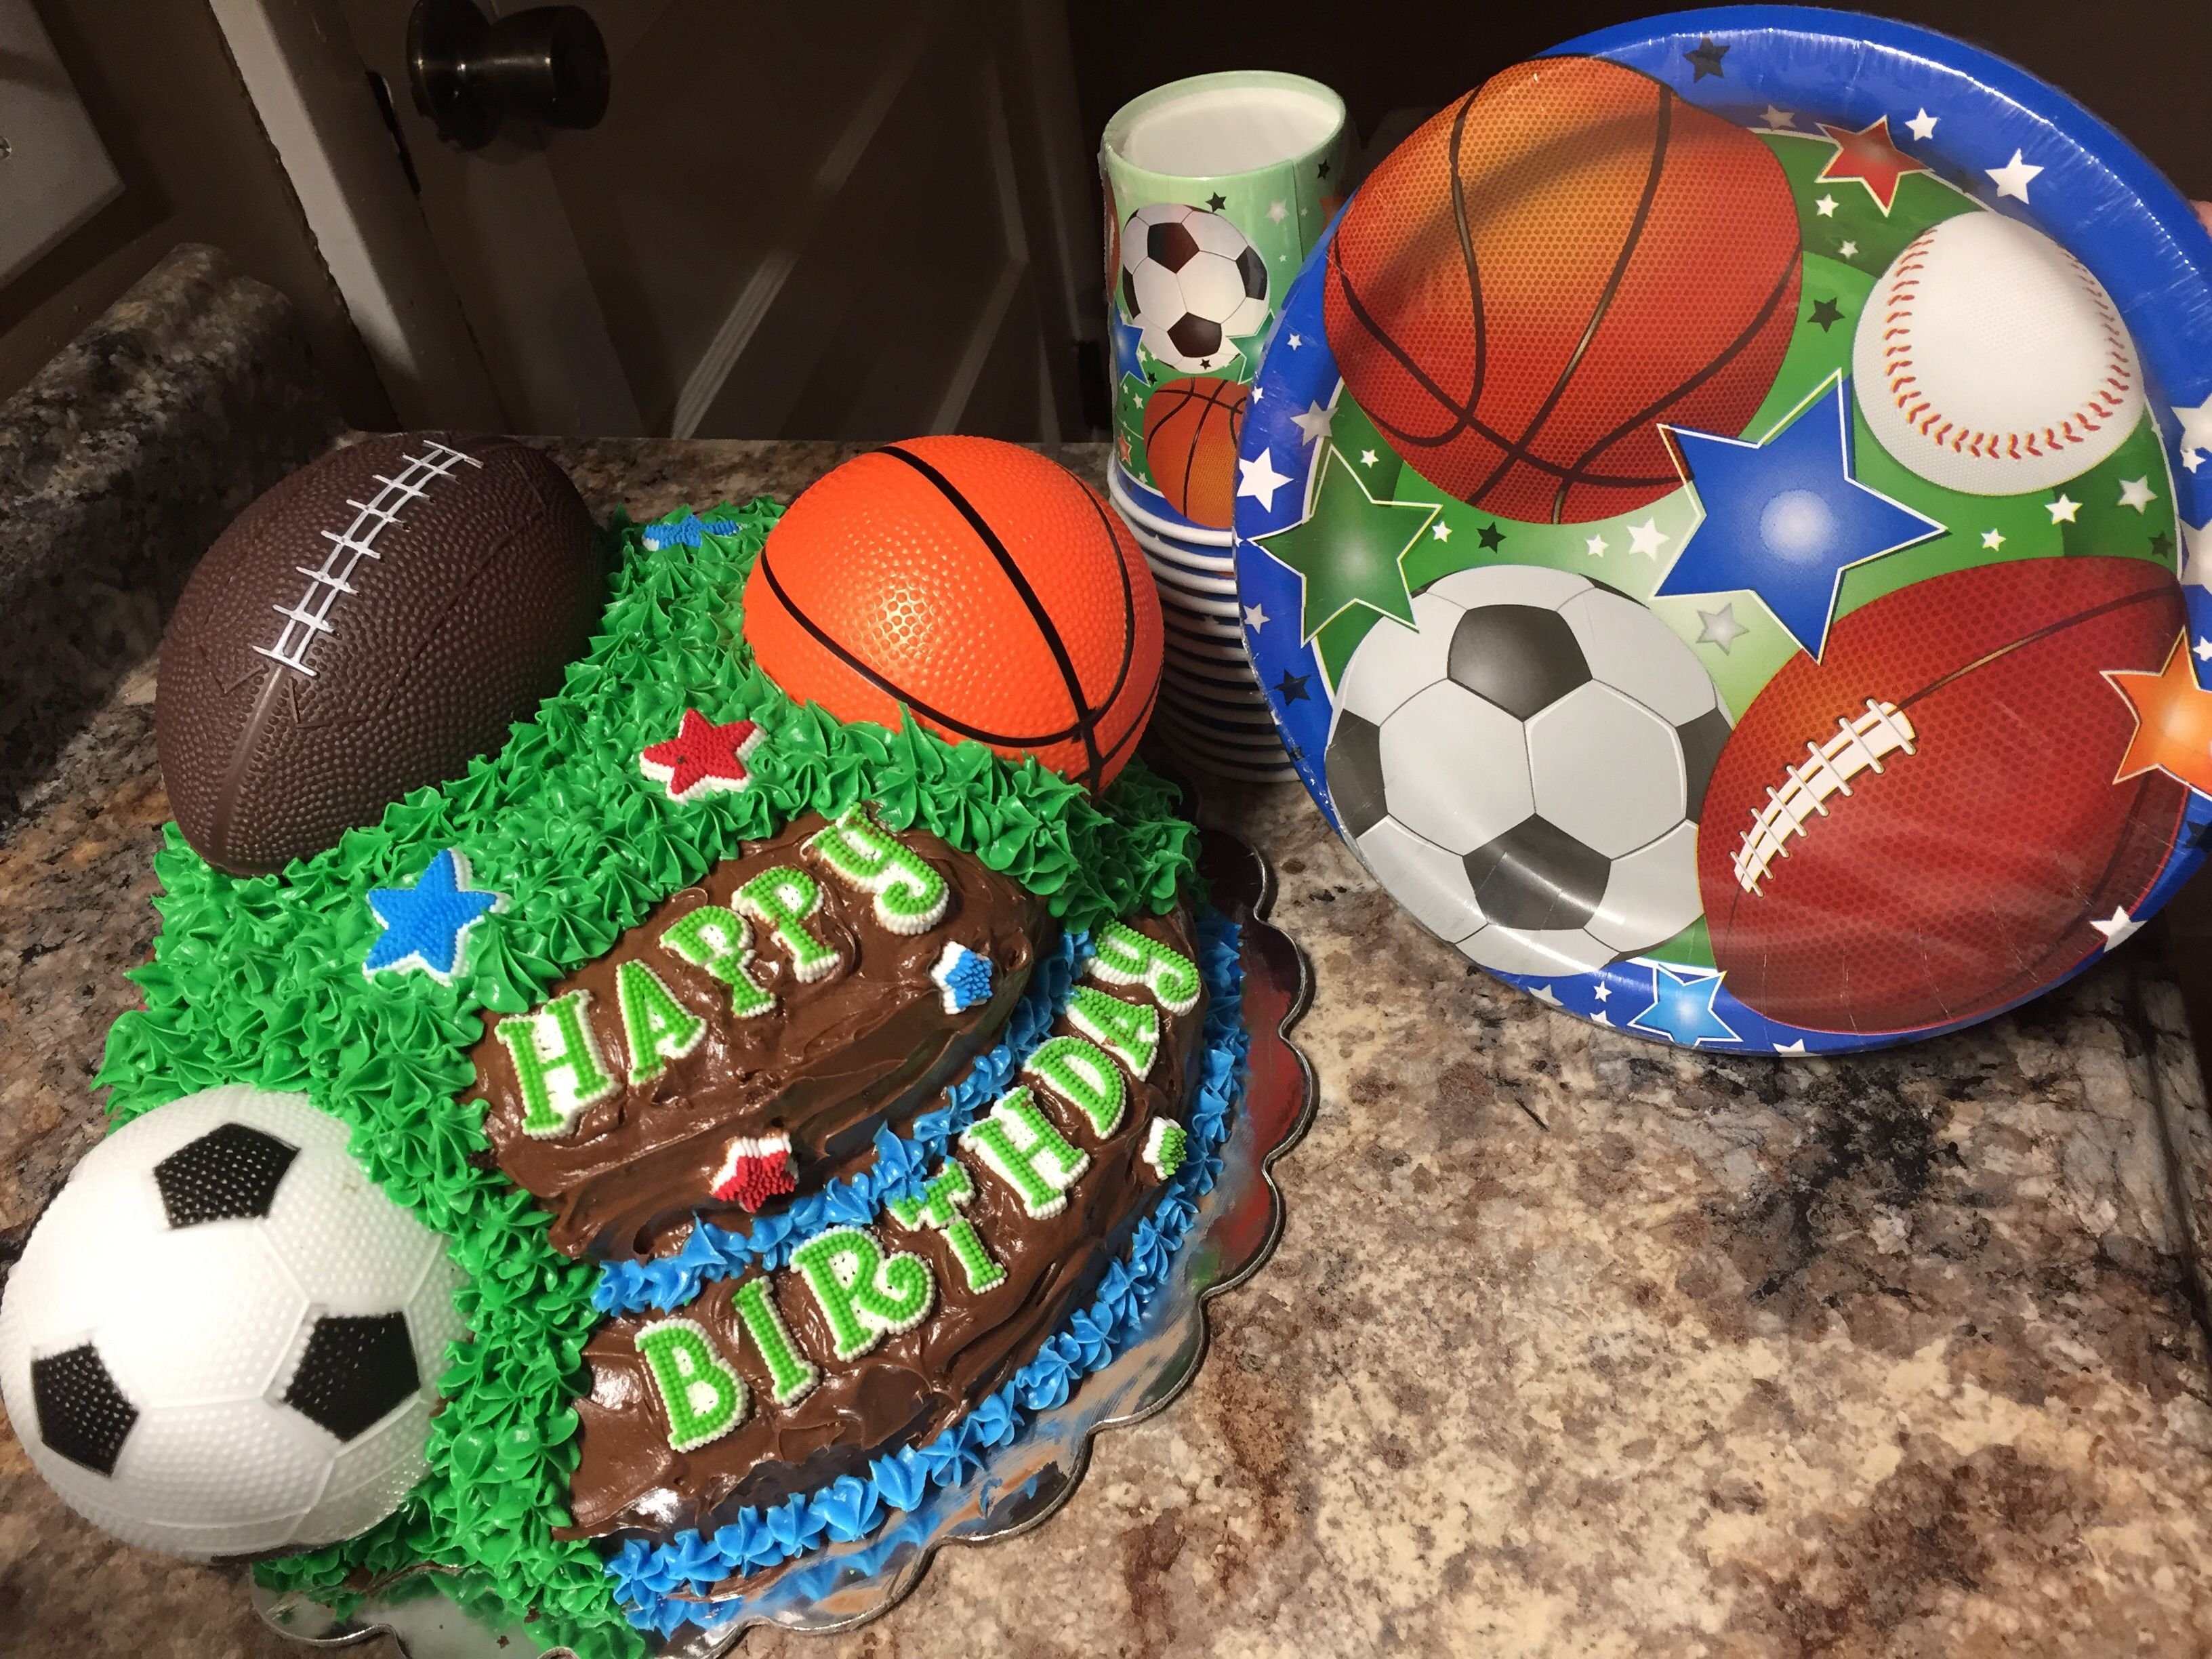 Sports Themed Cake Soccer Basketball Football Chocolate On Chocolate Grass Two Layers Jasper S 7th B Sports Themed Cakes 7th Birthday Cakes Themed Cakes